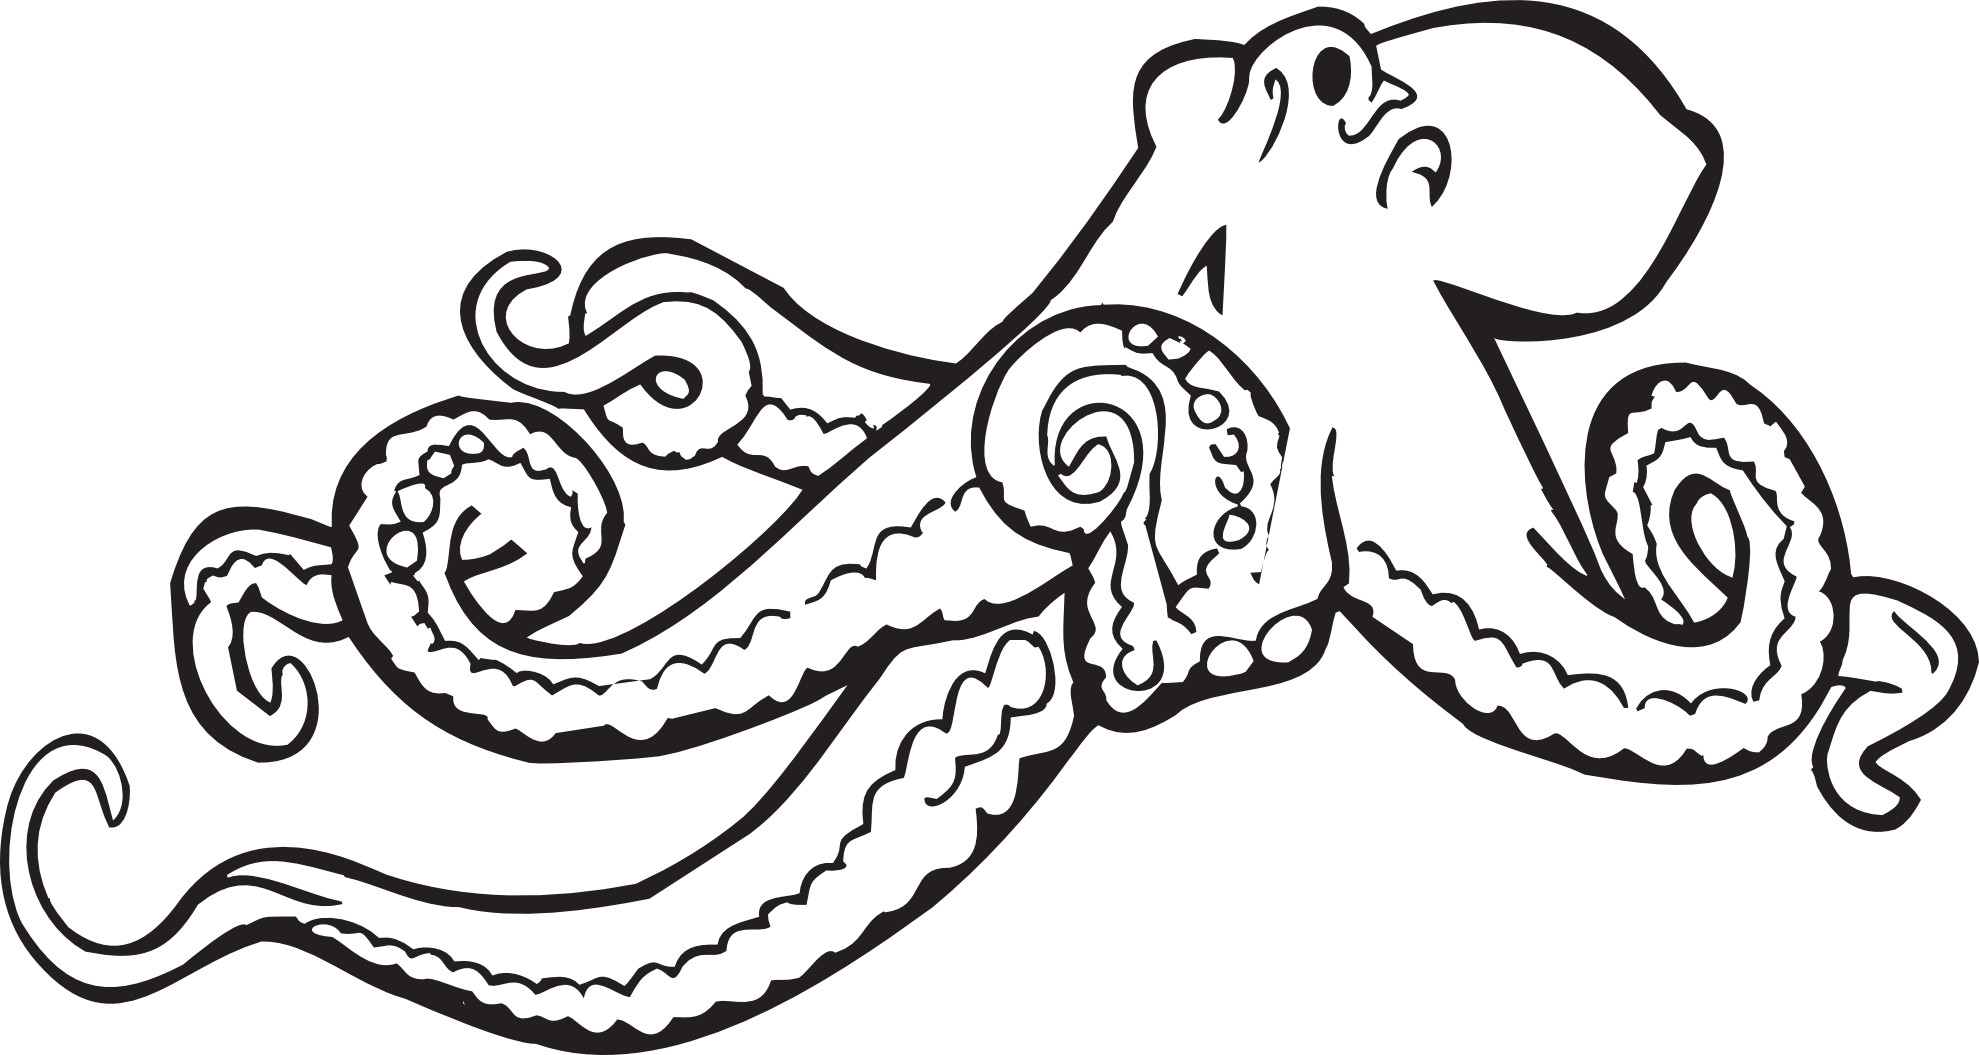 octopus clip art black and white clipart panda free clipart images [ 1979 x 1055 Pixel ]